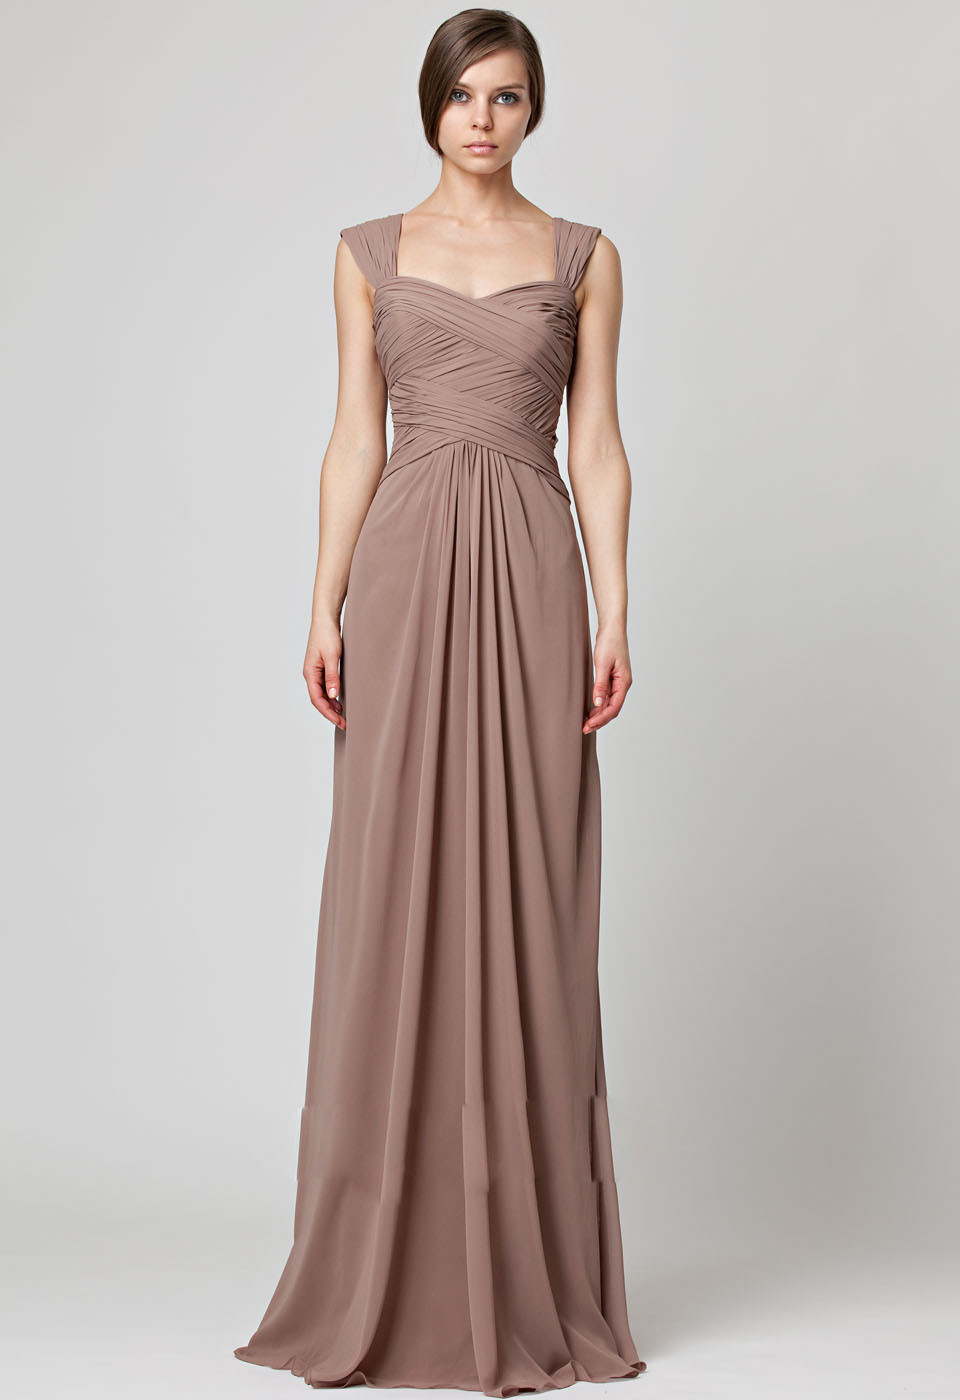 Chiffon Cap Sleeves Sheath Ruched Empire Waist Long   Bridesmaids     Dress   450036